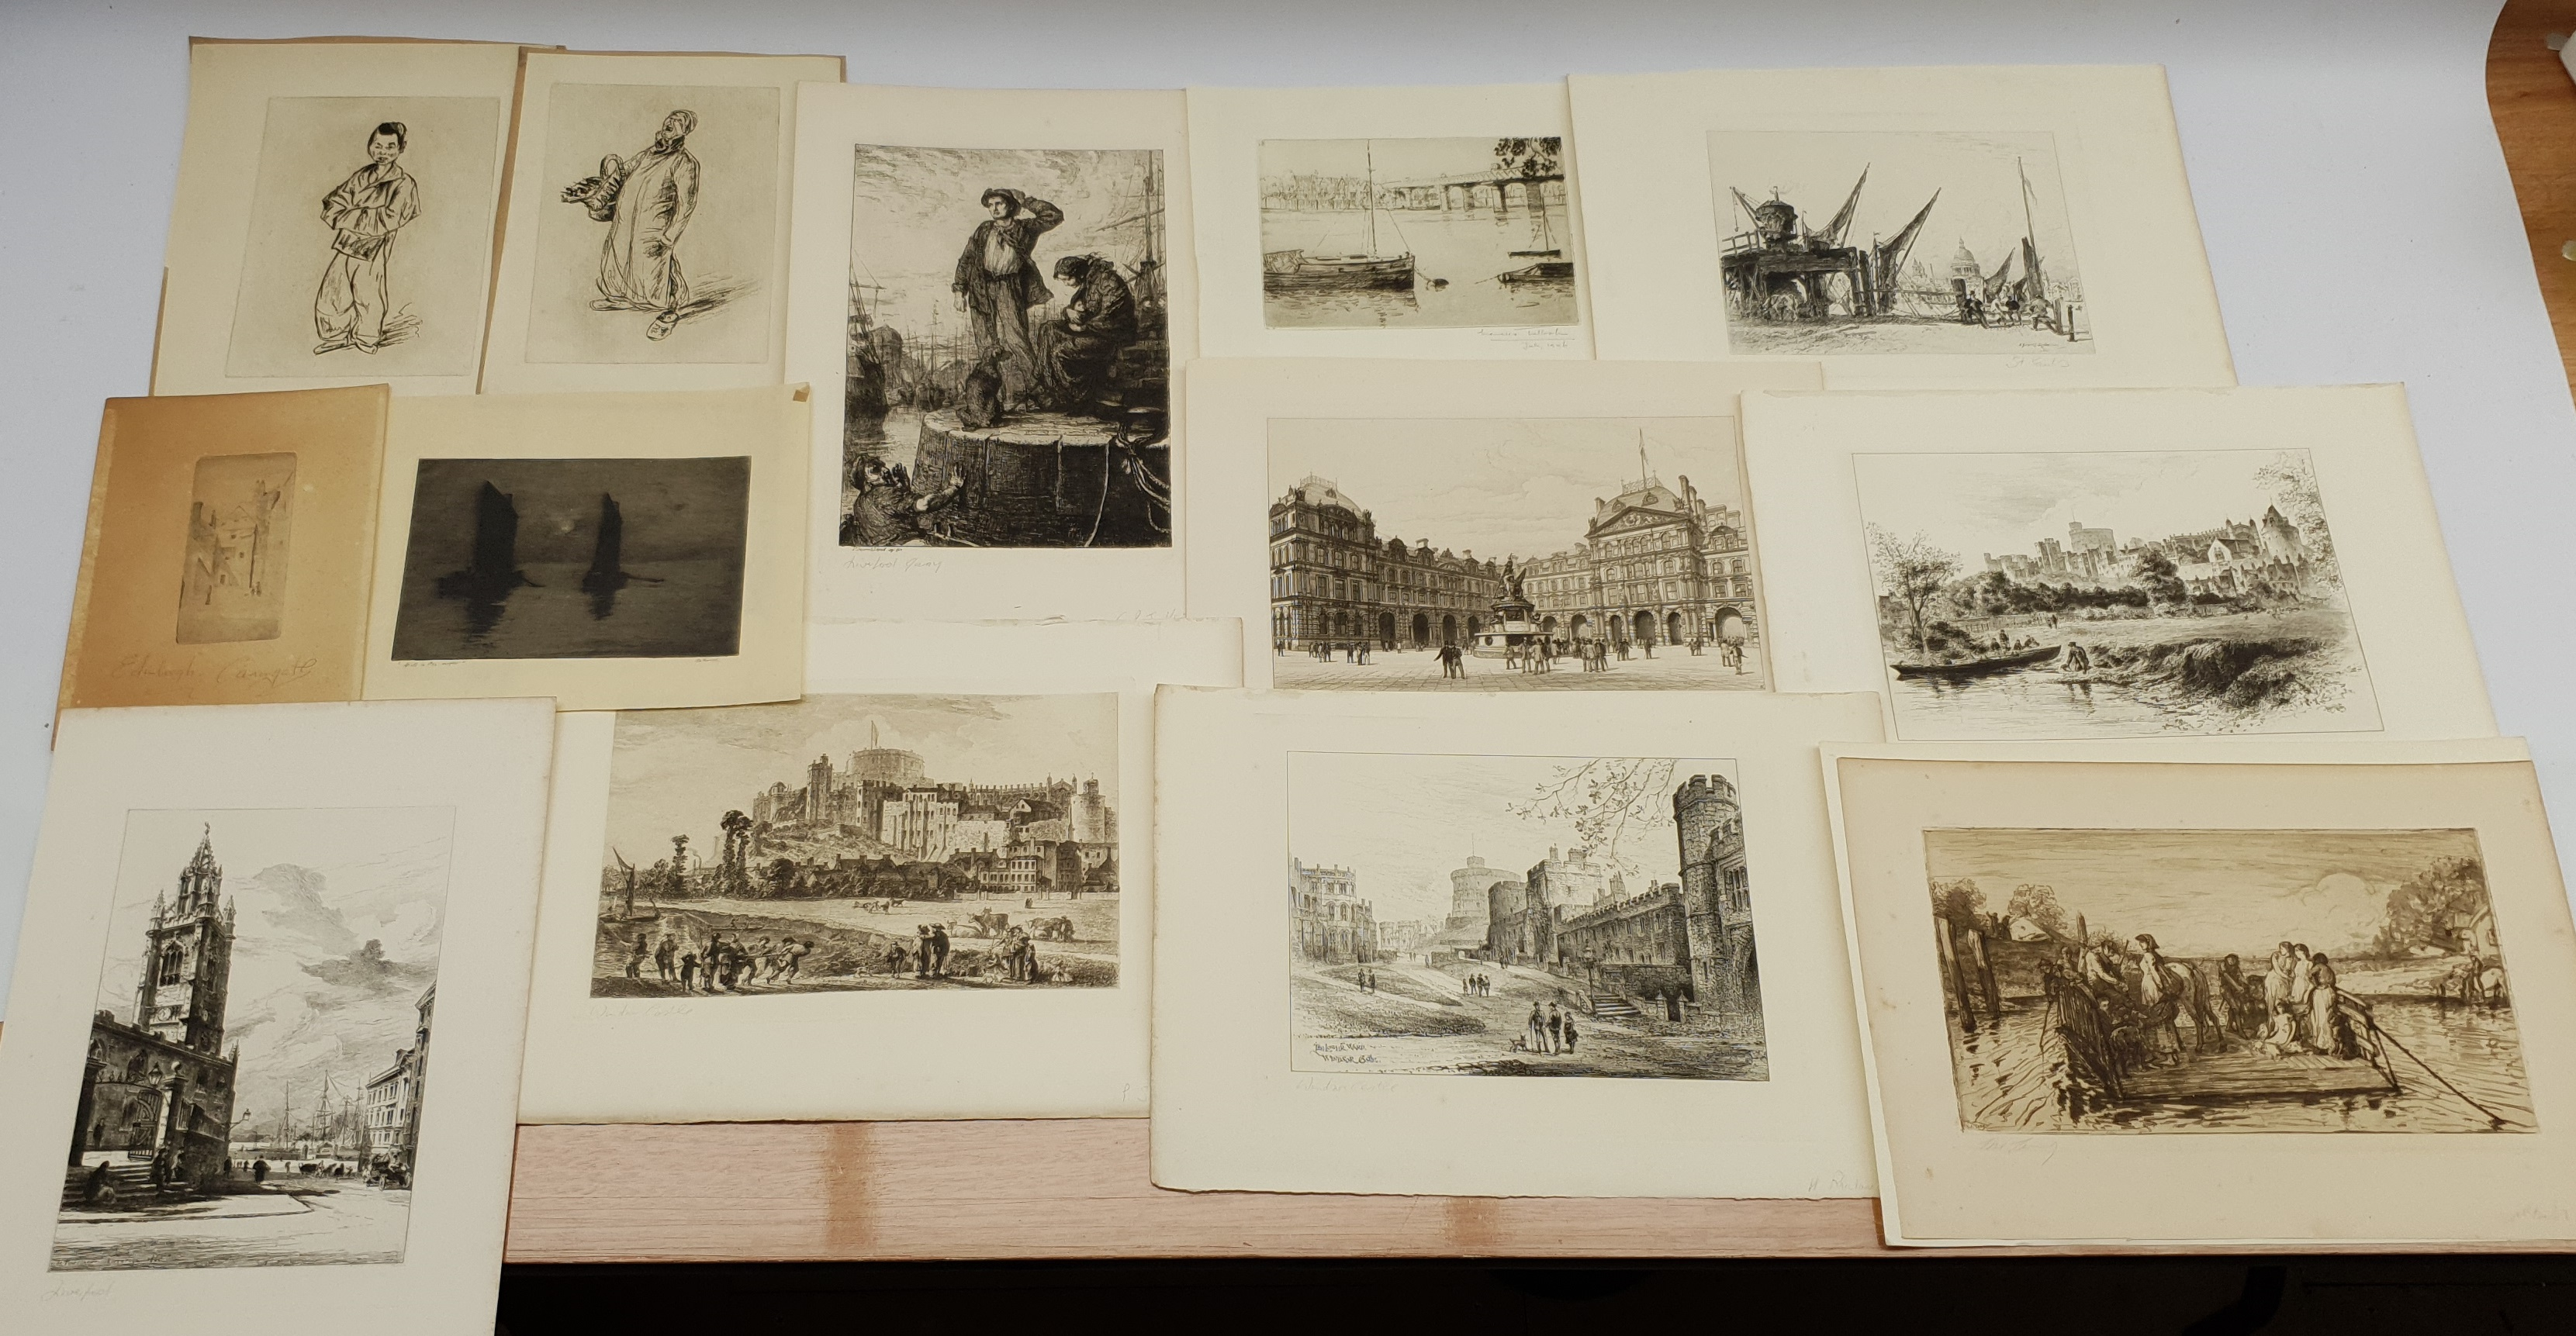 Collection of 19th/early 20th century etchings and engravings including 'Edinburgh Castlegate', 'St